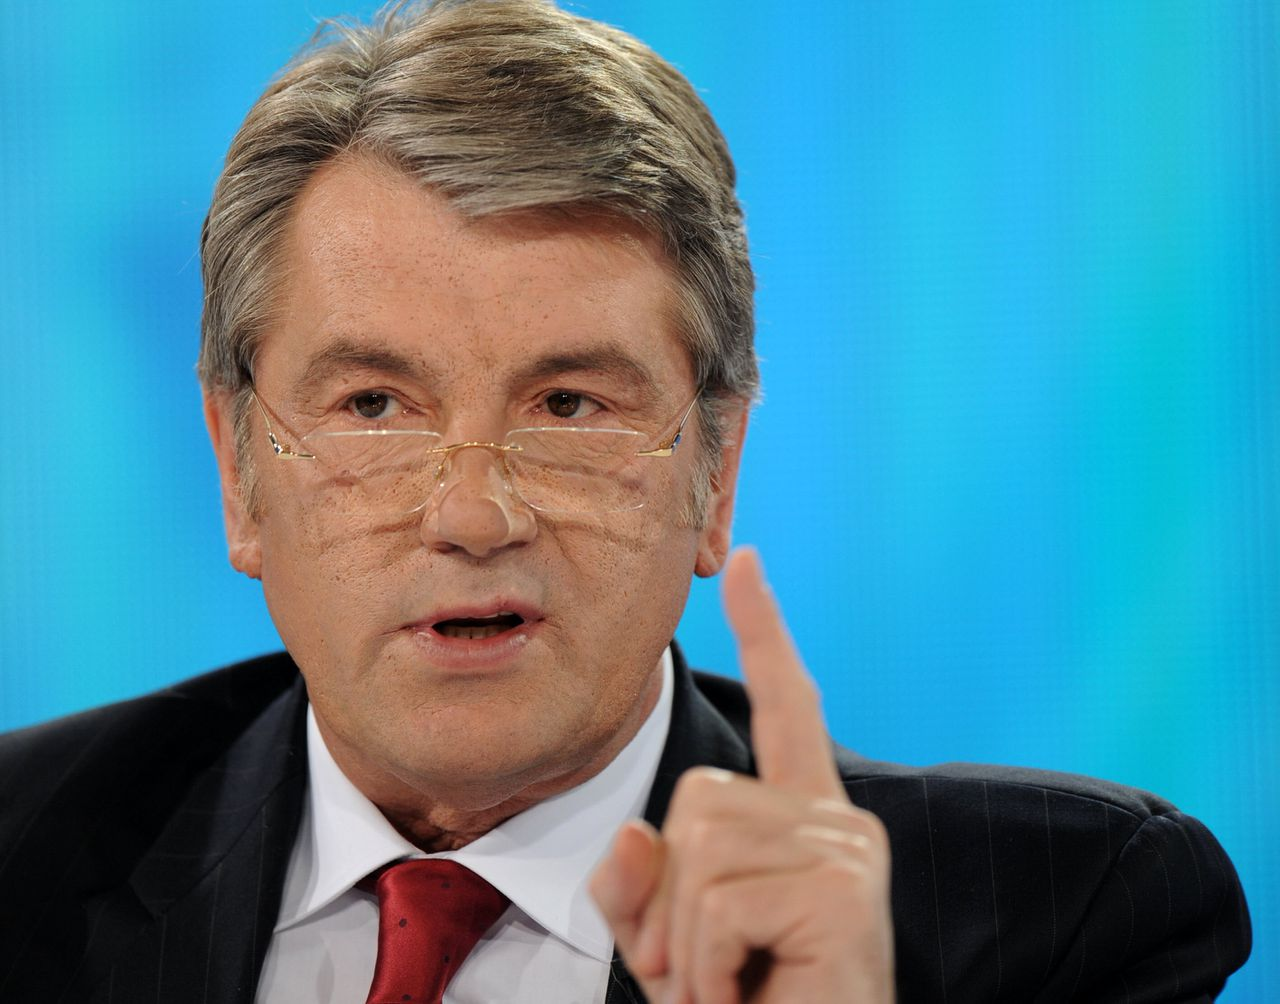 Viktor Joesjtsjenko hekelt euroscepsis in het 'oude Europa' (Foto AFP.) President of Ukraine Viktor Yushchenko listens to a journalist's question during his press conference in Kiev on April 22, 2009. At the beginning of April, the Ukrainian parliament decided to hold the presidential election on October 25, a move that was widely seen as a blow to Yushchenko, who had wanted to hold the vote in January 2010 and is awaiting a constitutional court decision over the date. The jockeying over elections comes as Ukraine has become one of the world's hardest-hit countries in the global economic crisis, as a drastic fall in the price of metals, Ukraine's main export, has led to thousands of lost jobs. AFP PHOTO/ SERGEI SUPINSKY